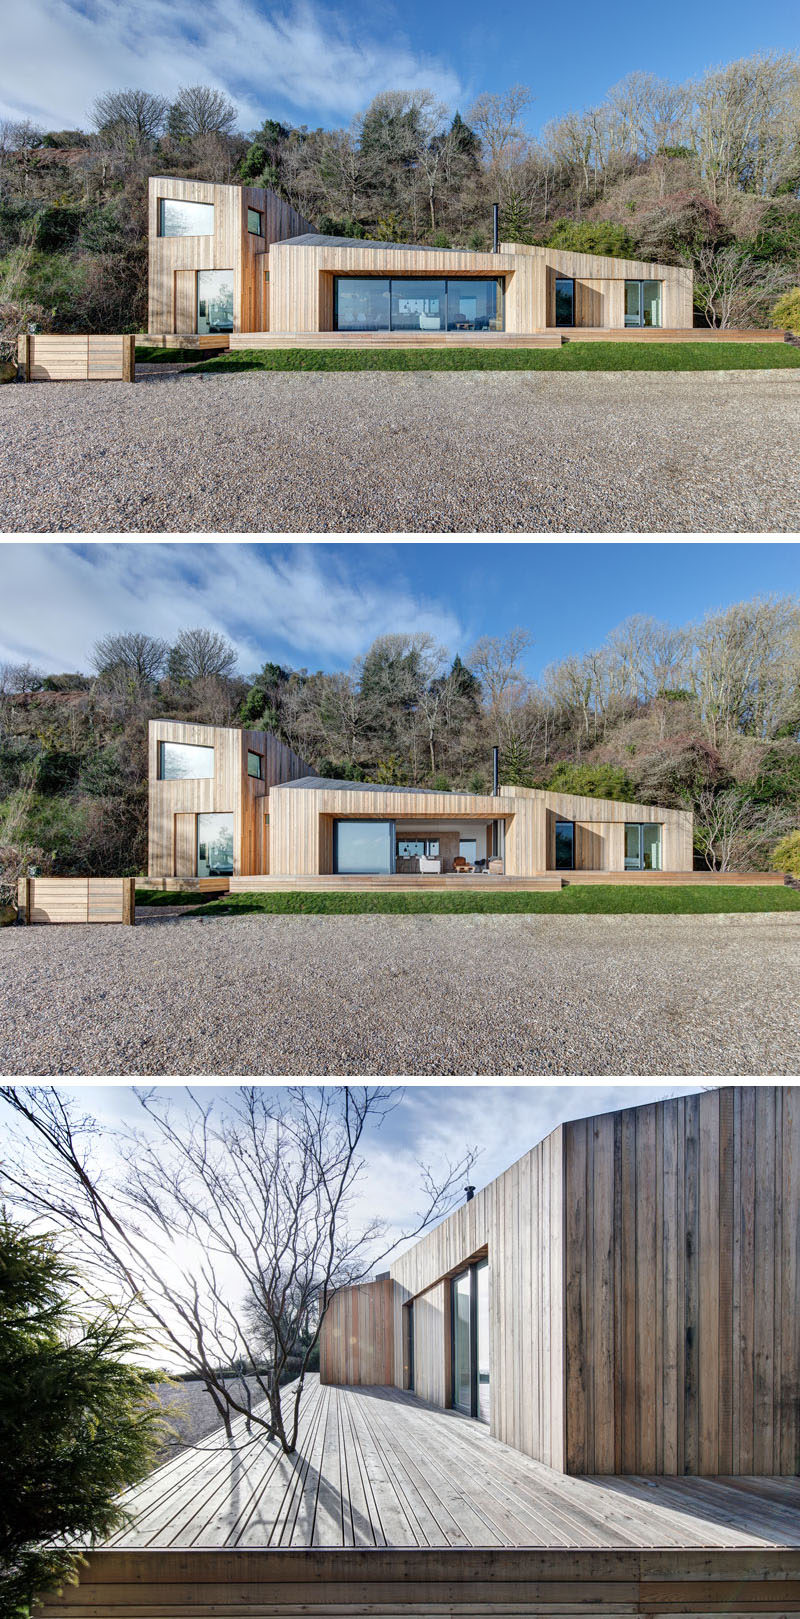 AR Design Studio have created a timber holiday home with water views that has a bright, comfortable and welcoming interior.